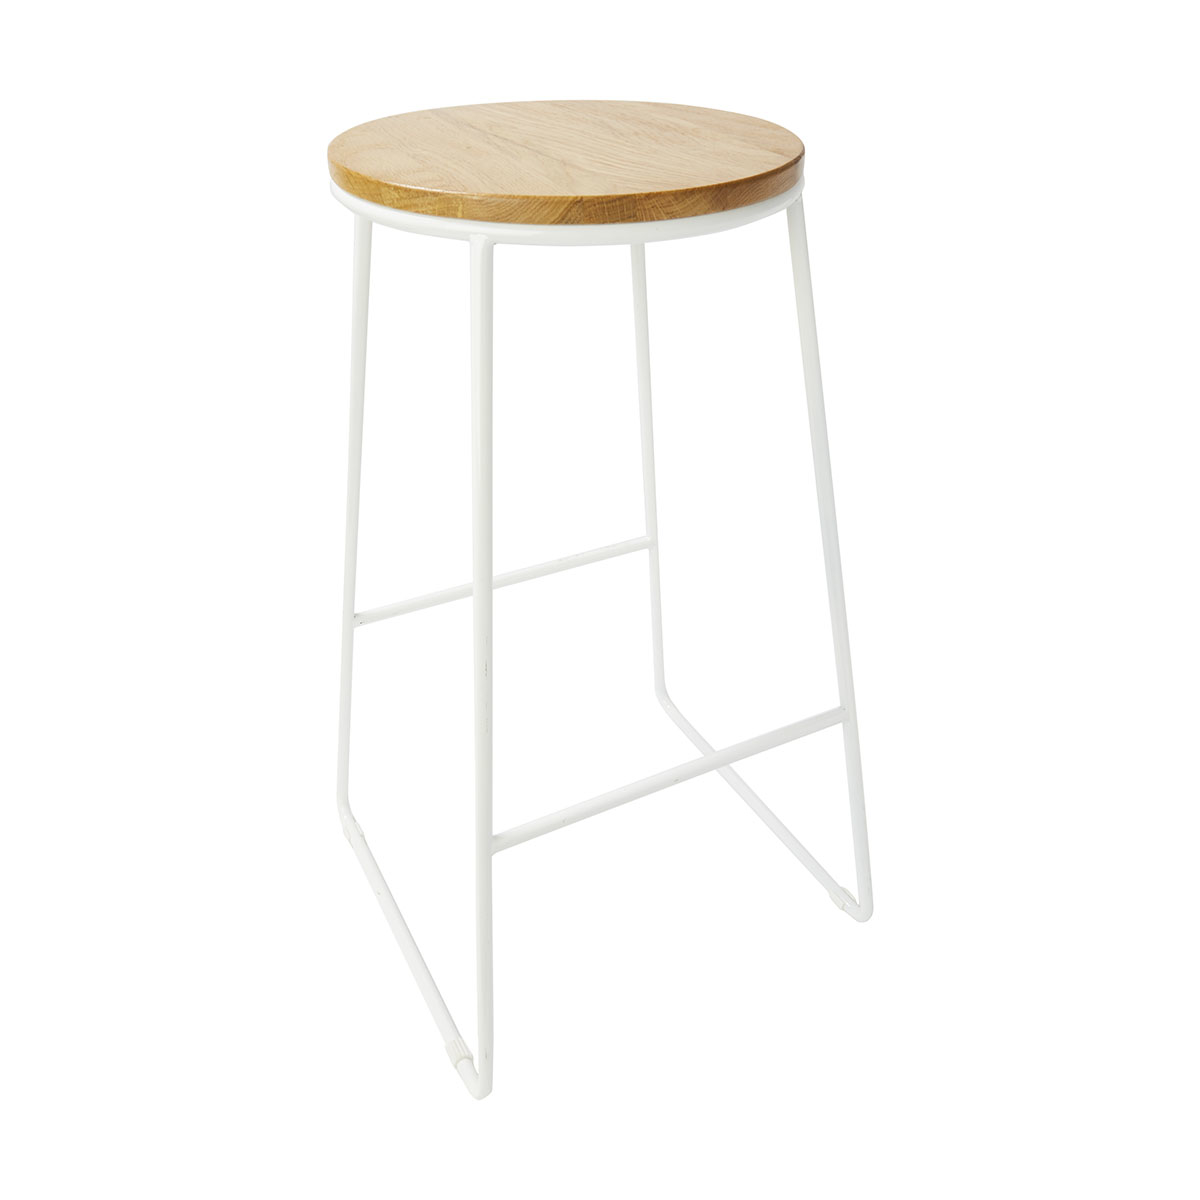 White Industrial Stool Kmart